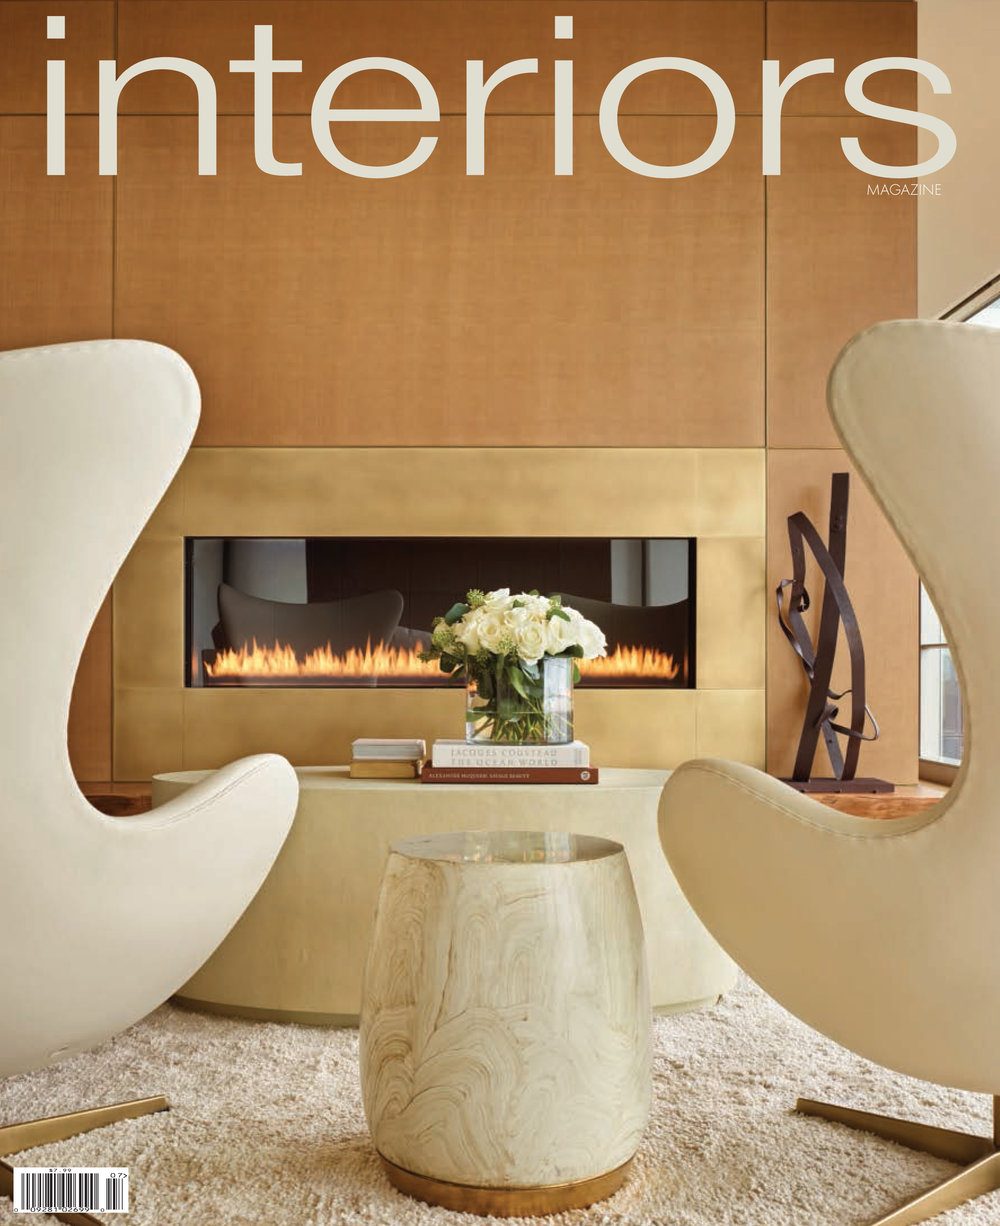 Interiors June + July 2013